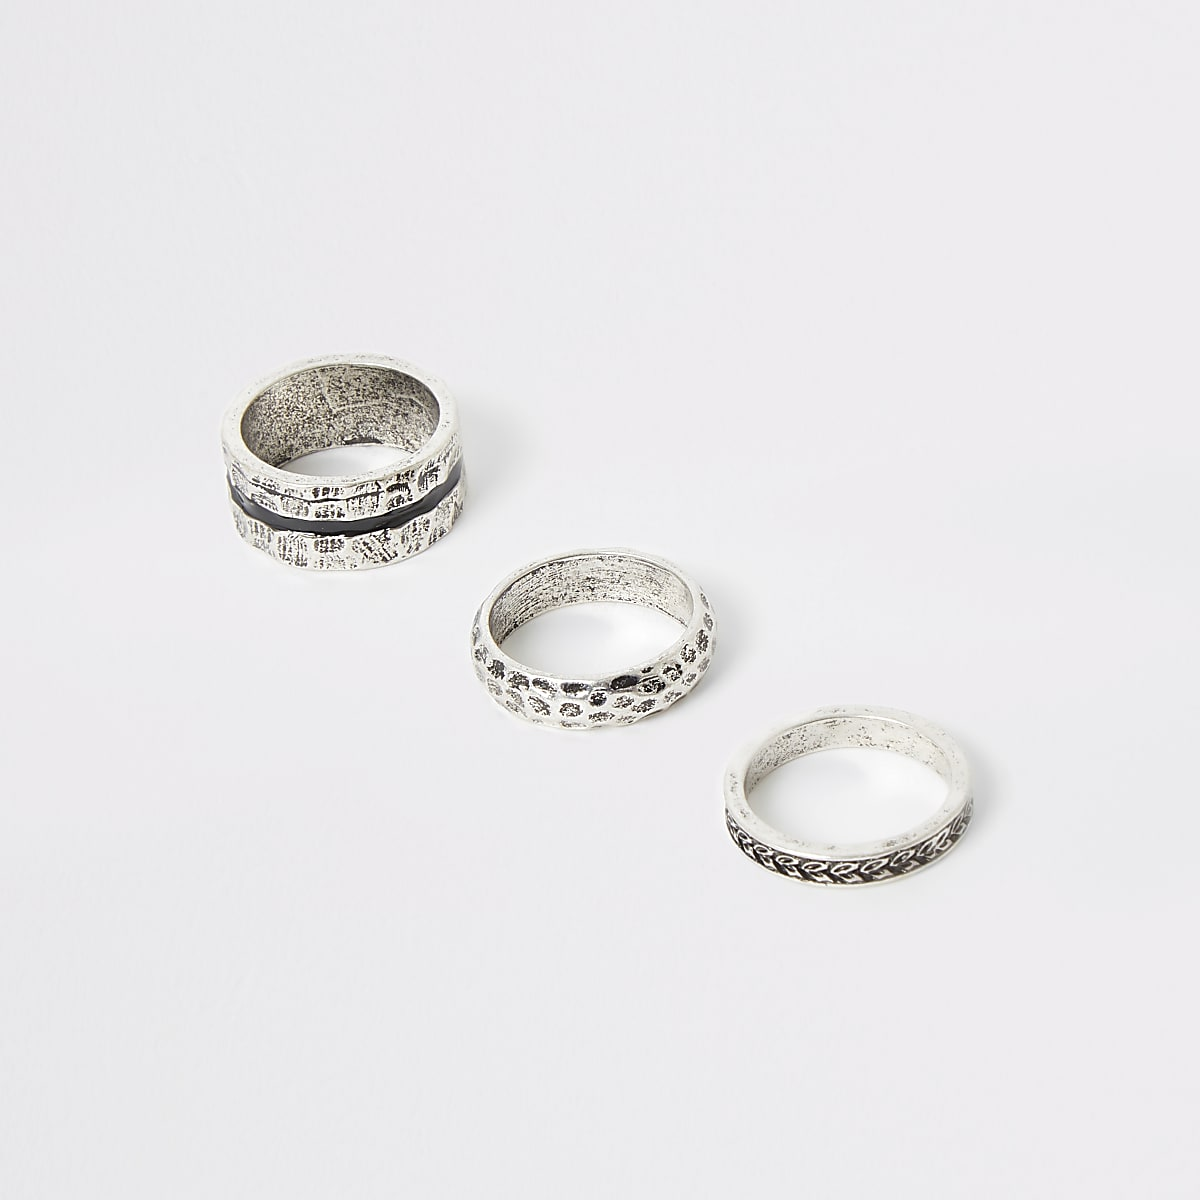 Silver color textured ring 3 pack